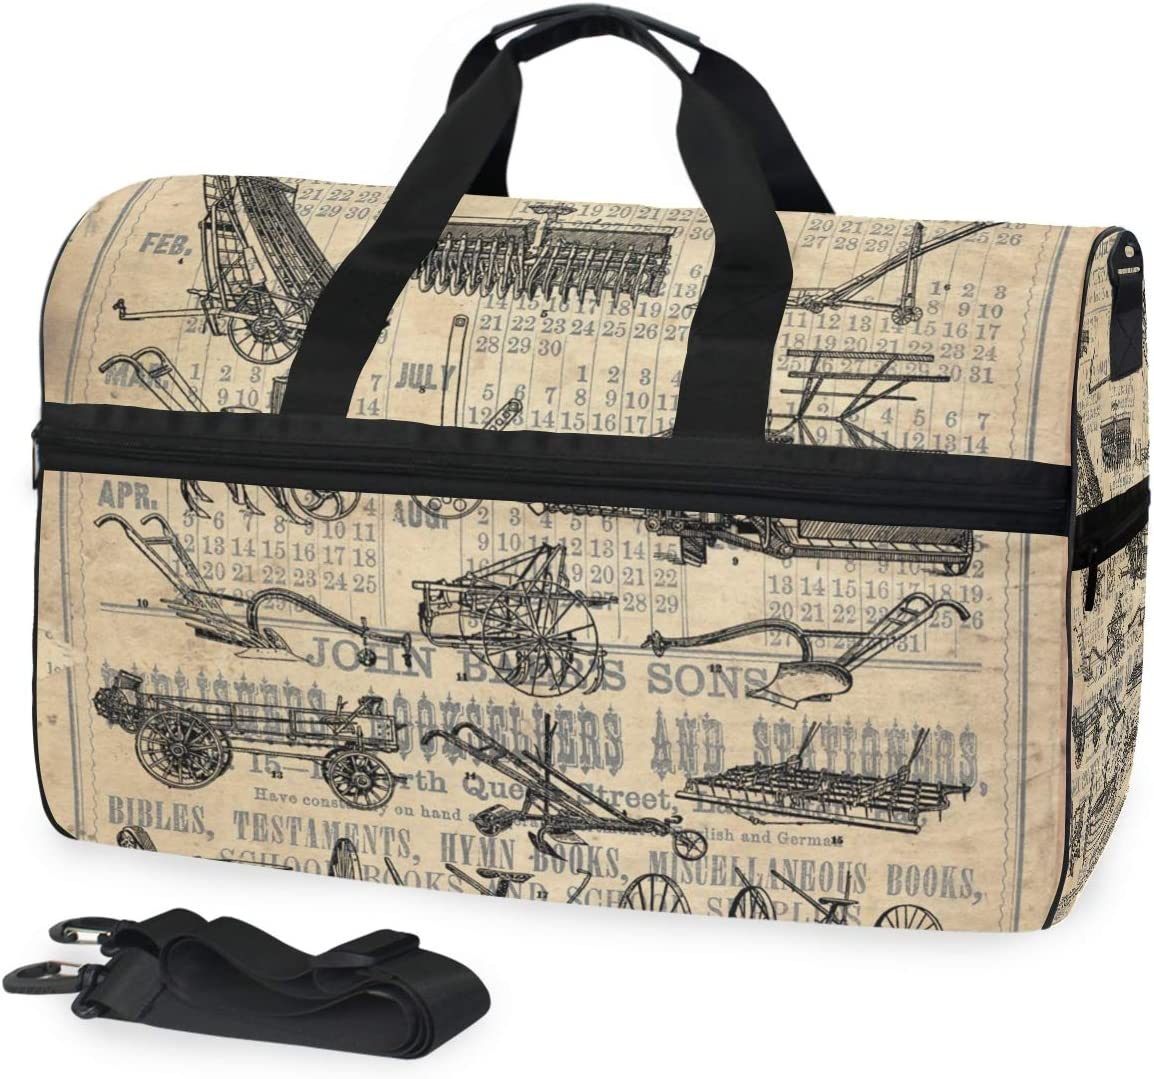 Vintage Farm Agricultural Implements Tractor Plow Farmhouse Large Travel Duffel Tote Bag Weekend Overnight Travel Bag Gym Bag Fitness Sports Bag with Shoes Compartment